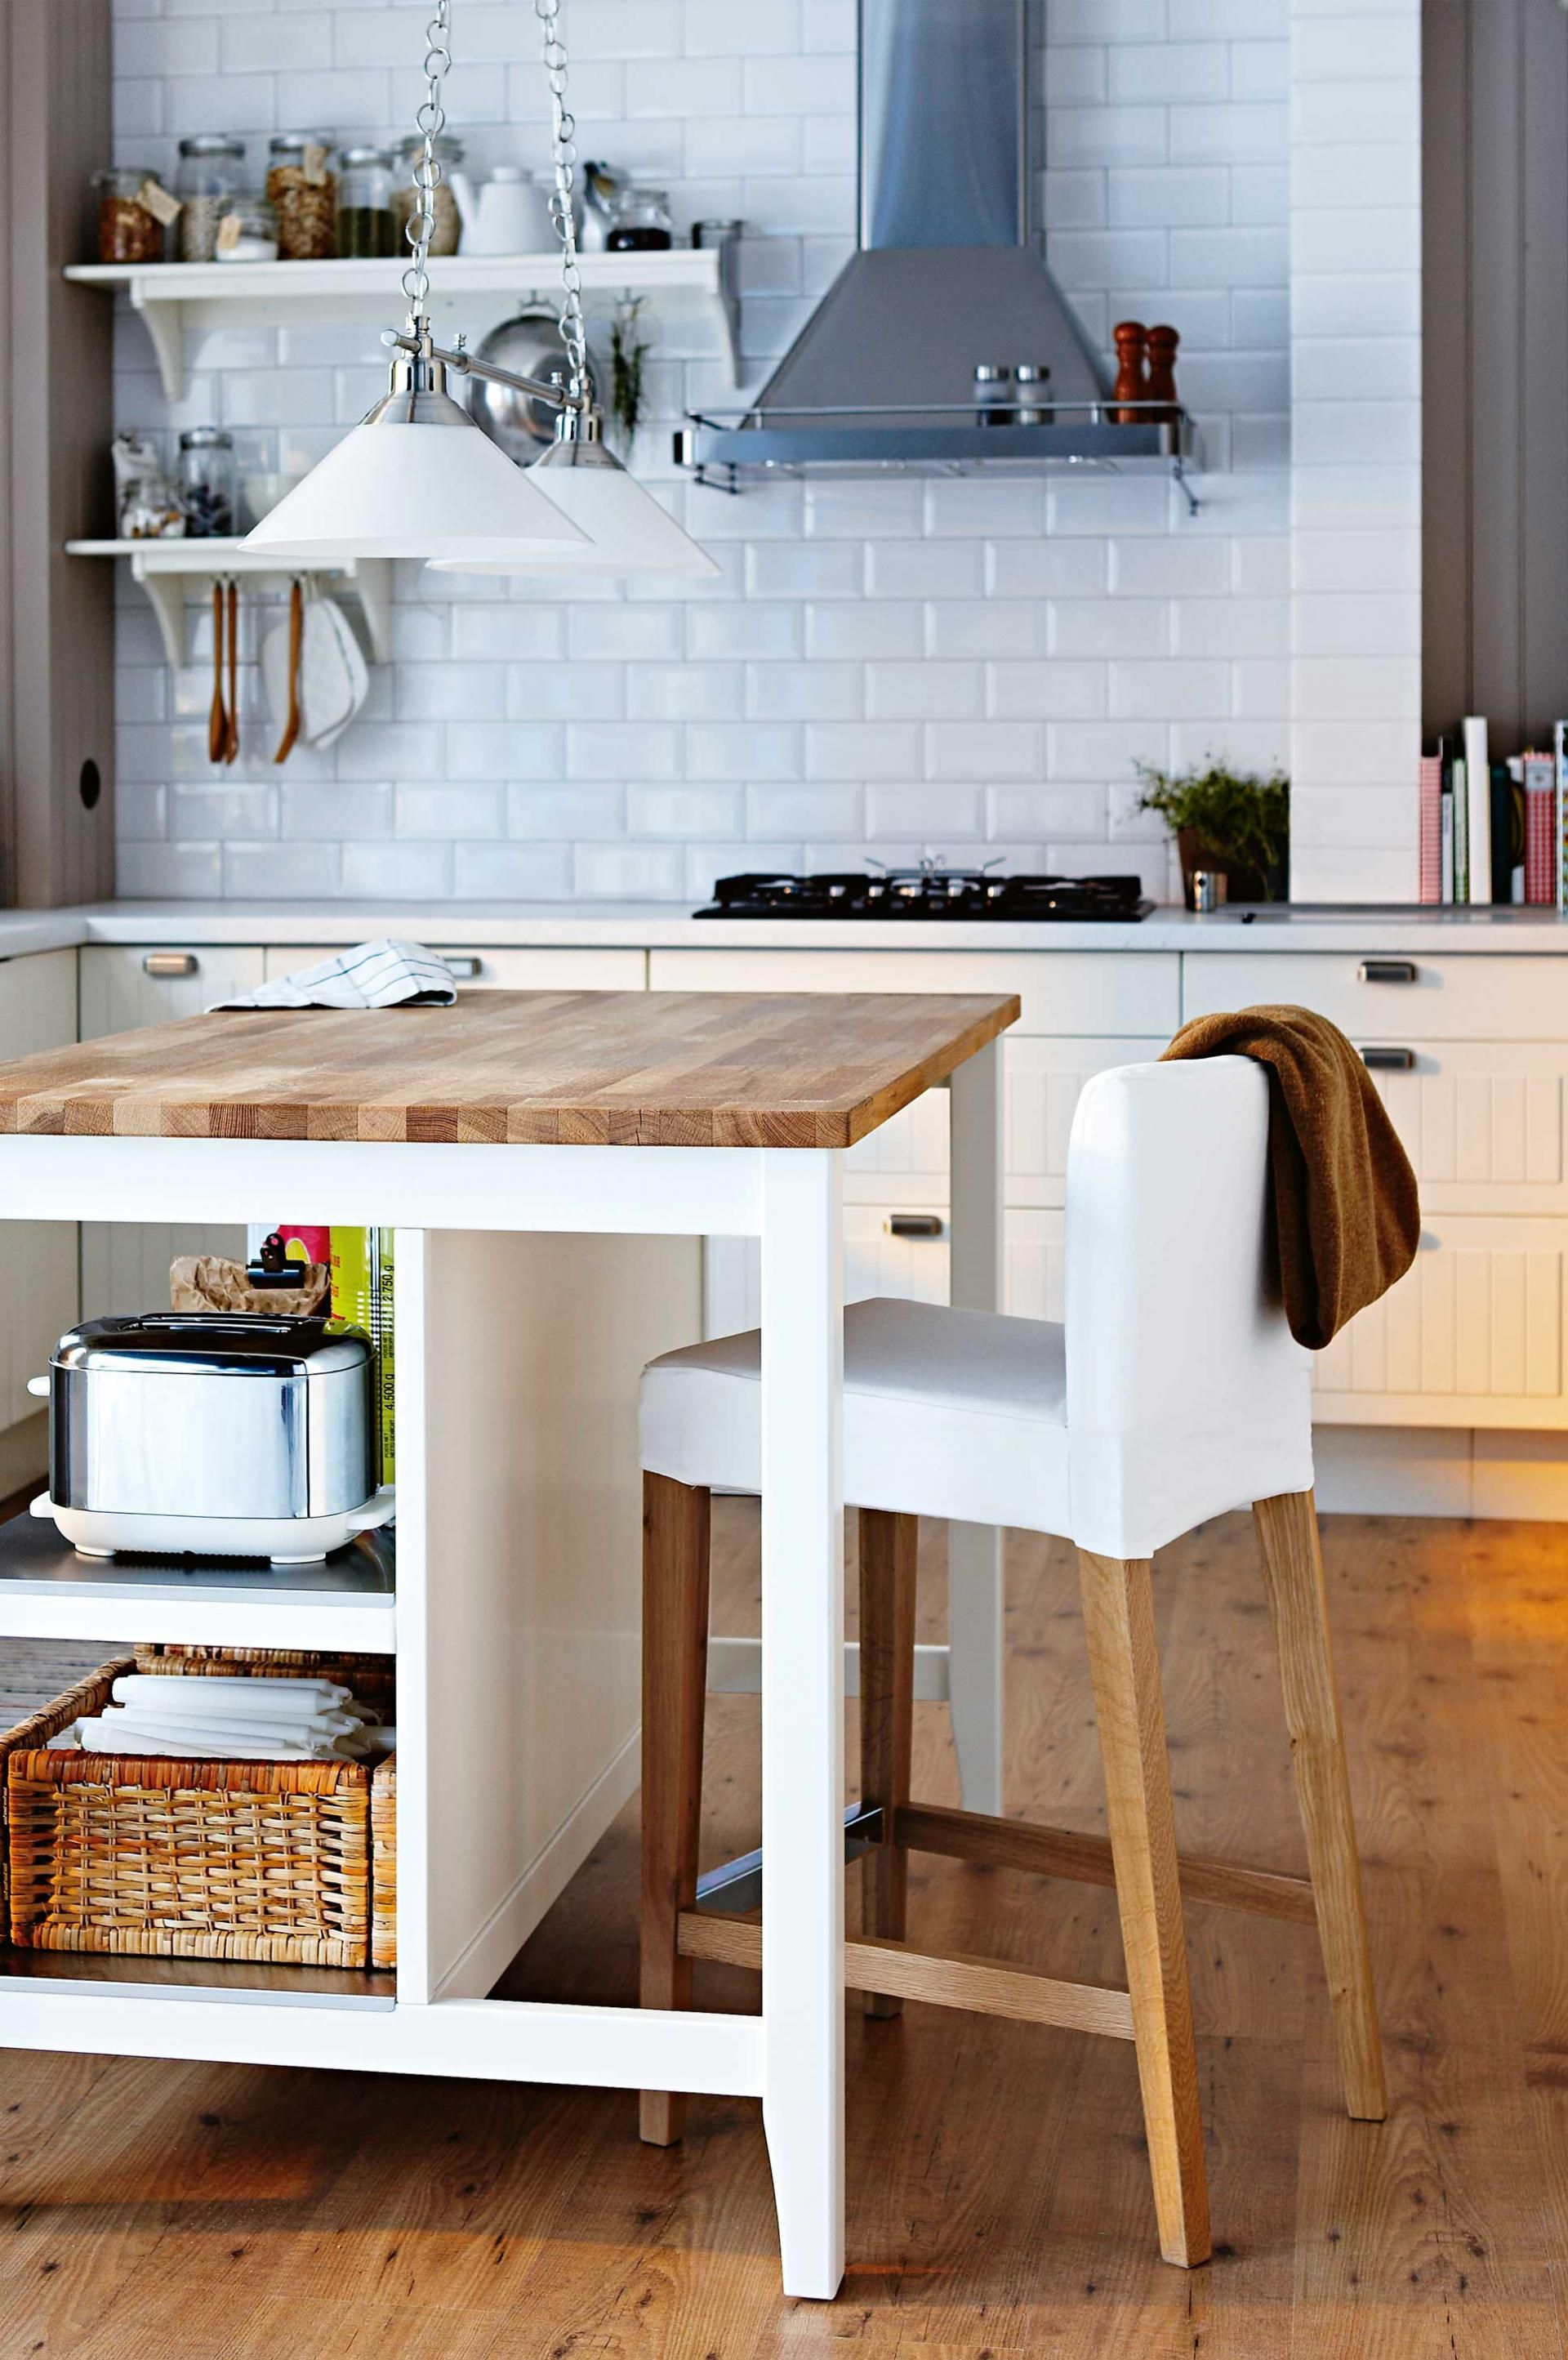 11 Space Saving Ideas For Your Kitchen